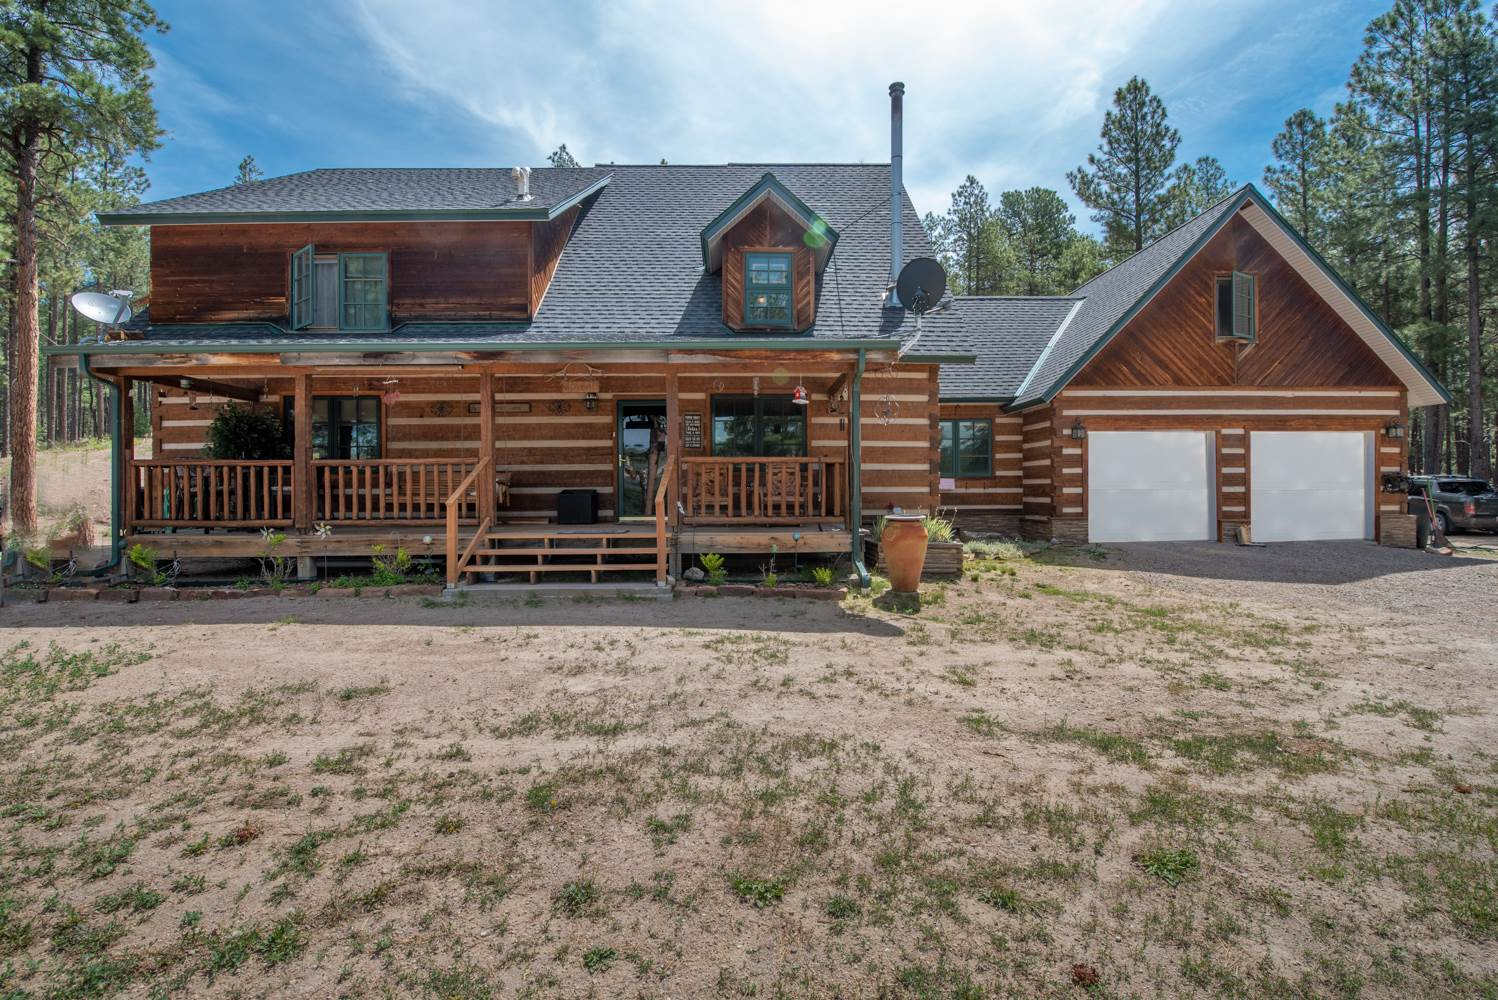 Beautiful setting for this home built with Northern Hemlock logs on 2 acres of land among soaring Ponderosa Pines. Enjoy the mountain air from your 8x24' covered front porch looking out to the mountain range. Great rm w/ Wood stove, vaulted ceilings, a 26ft pitch,  wood beams. Functional kitchen, stainless appliances, ample counter and cabinet space. 2 bedrooms and a bonus/flex room that could be an office/recreation/fitness on main level. Upstairs offers a loft and a spacious Master suite, huge walk in closet, bath w/jetted tub, separate shower. Viewing deck off Master. From lower level access back yard with SW landscape, privacy fence and hot tub. Also access to a separate entrance for in laws quarters/studio apt. complete with kitchenette and bath. Horses allowed, w/RUN IN stall and storage shed. Room for RV. Short drive of Los Alamos National Labs, Jemez Springs, and all the outdoor recreation the Jemez Valley has to offer.  Mountain Living at its finest